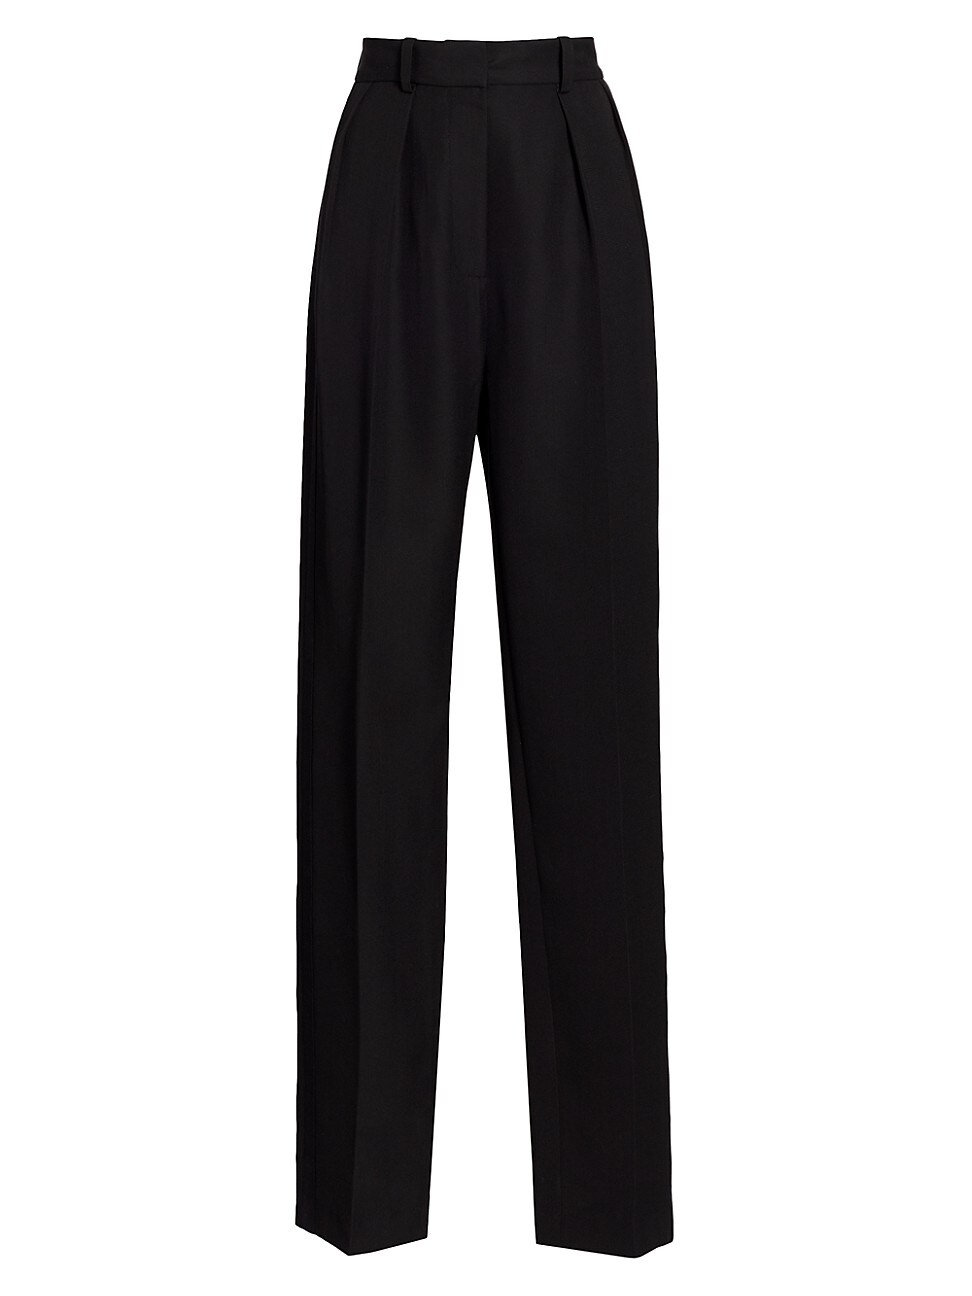 Victoria Beckham WOMEN'S HIGH WAISTED DOUBLE PLEAT TUX TROUSERS